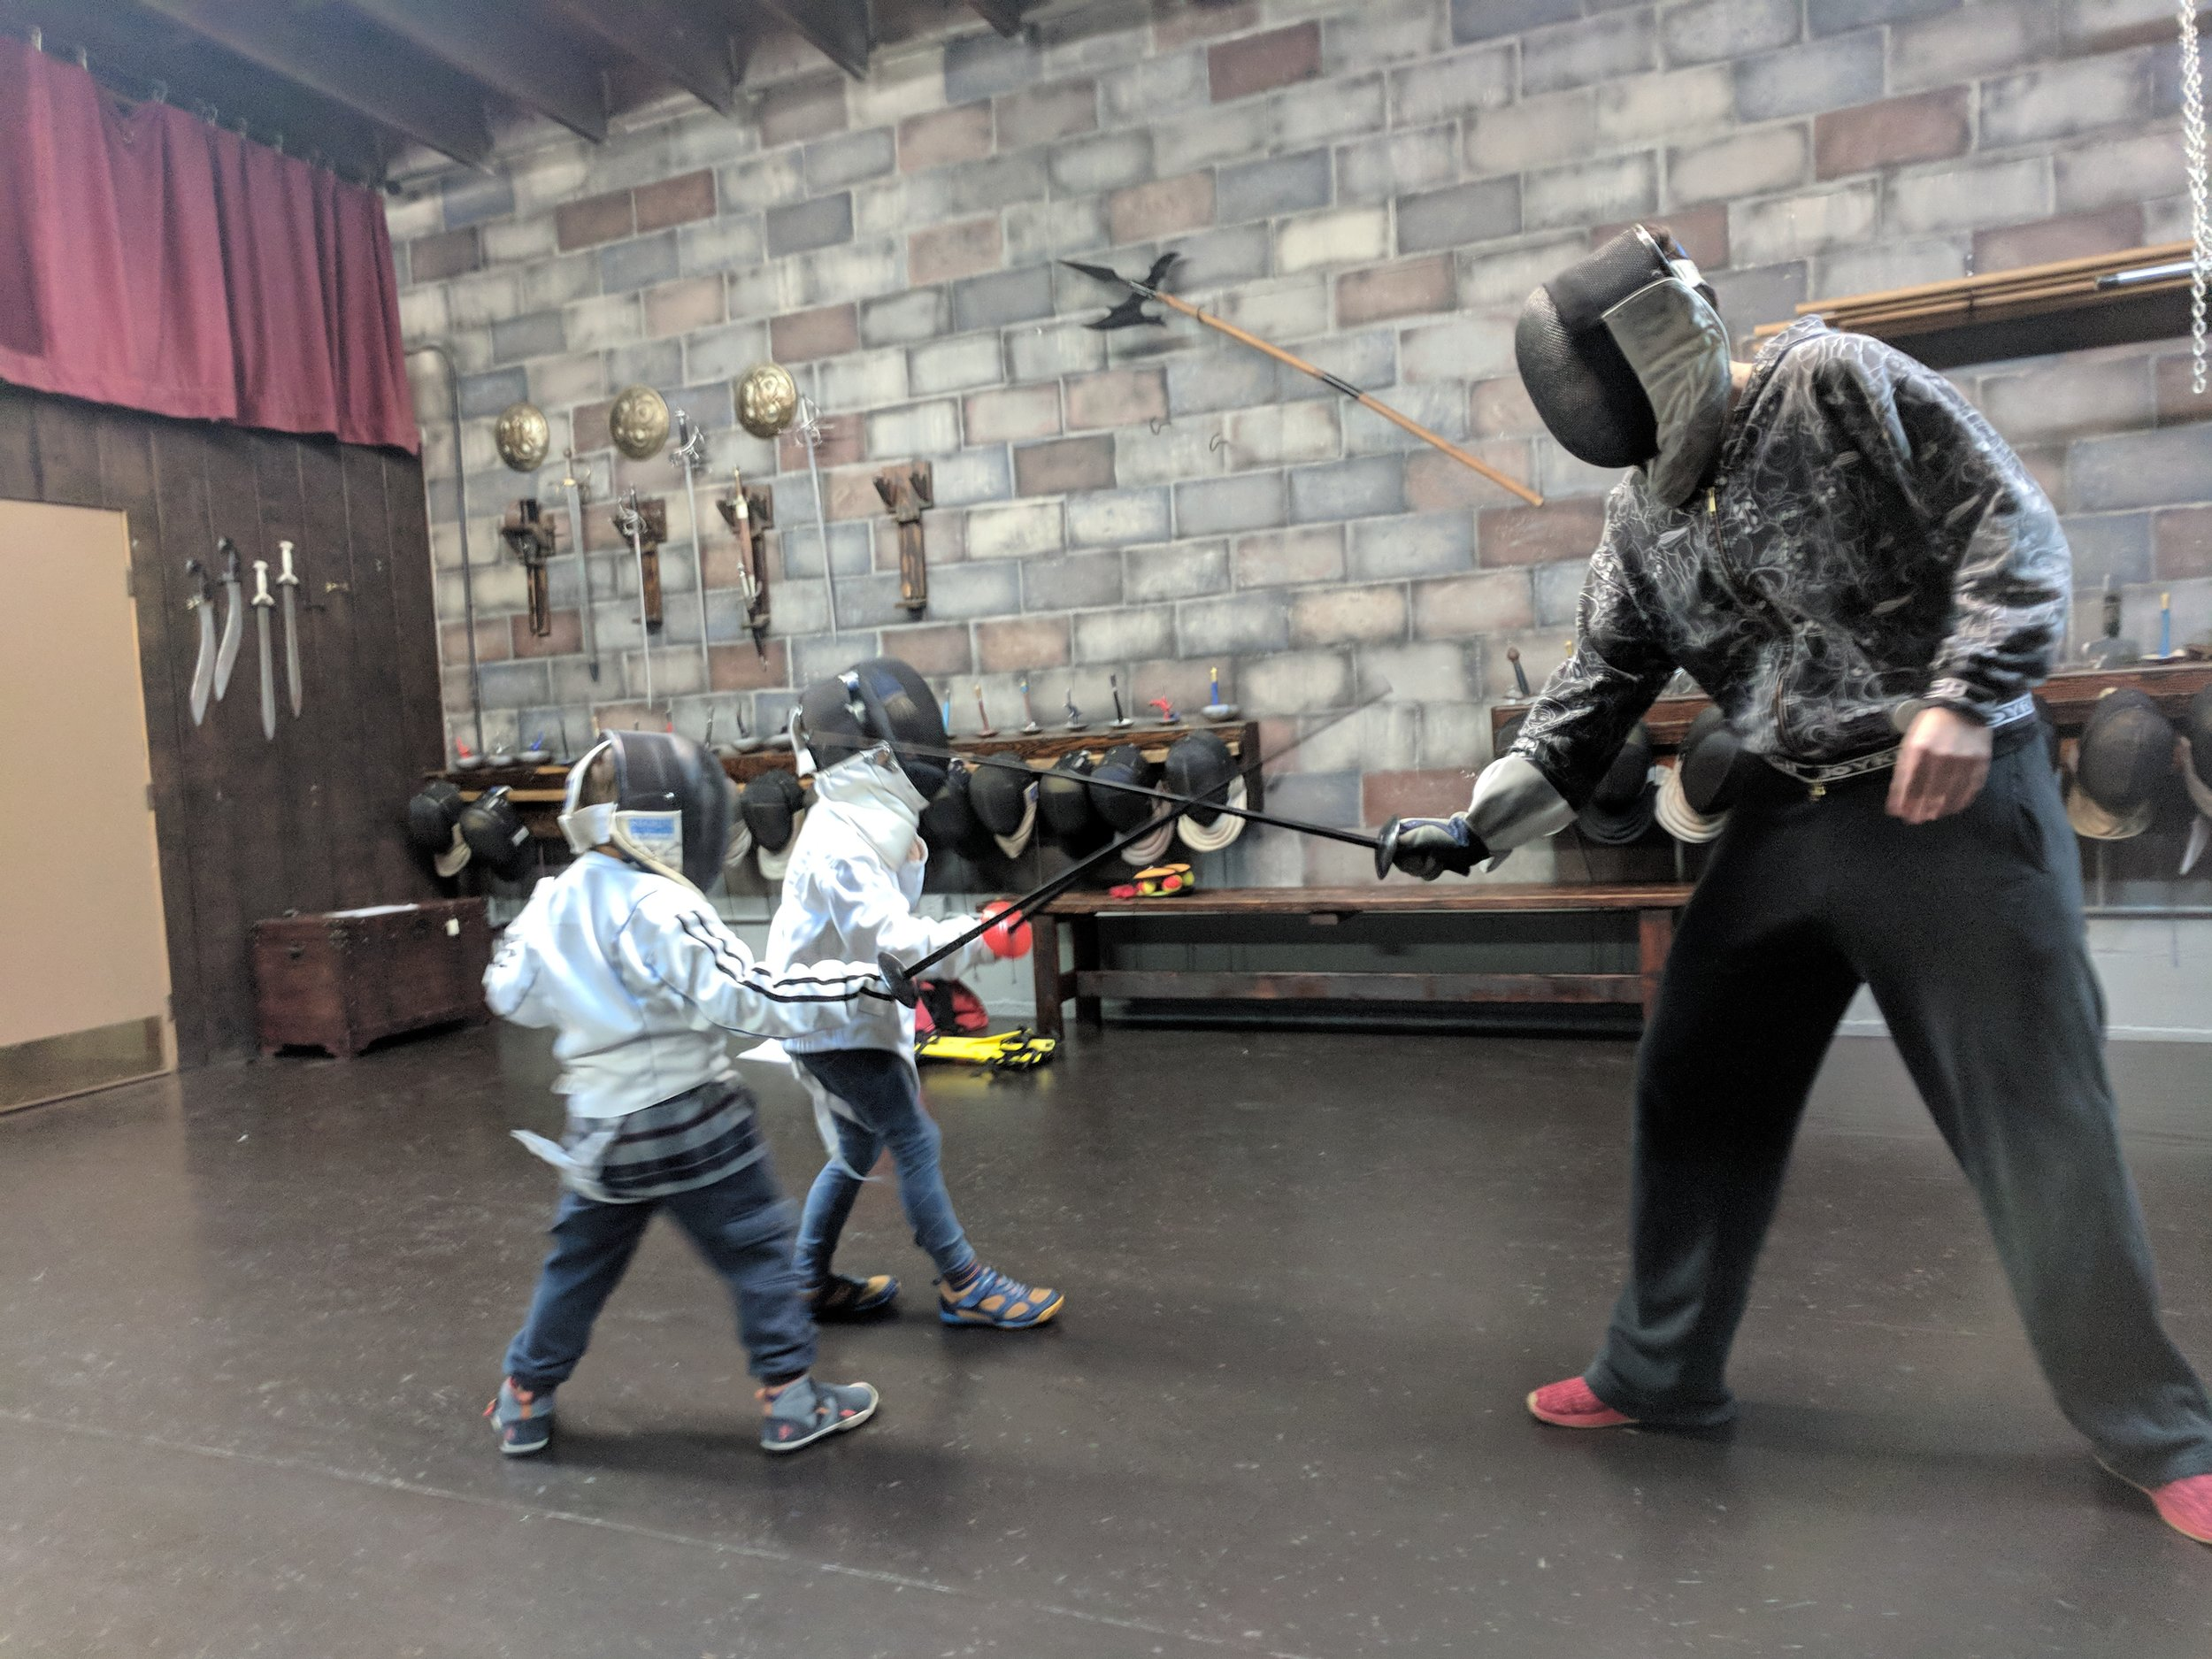 Knights of the Roundtable Fencing